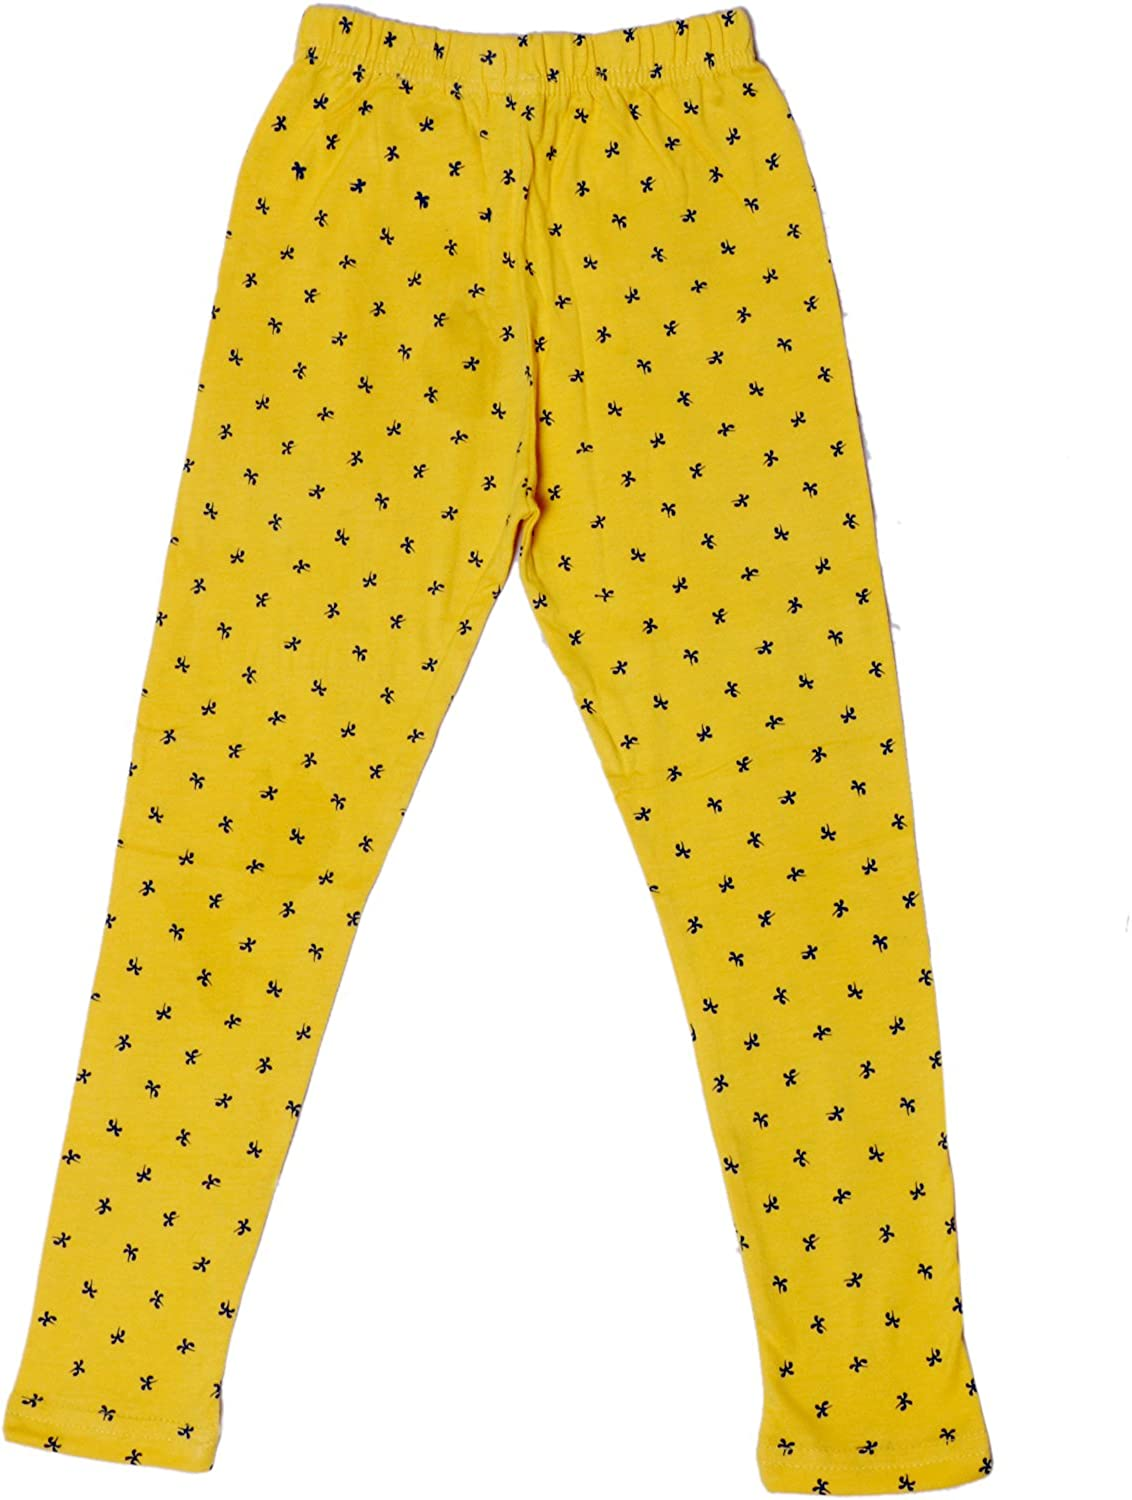 Indistar Girls Super Soft and Stylish Cotton Printed Legging Pants Pack of 2